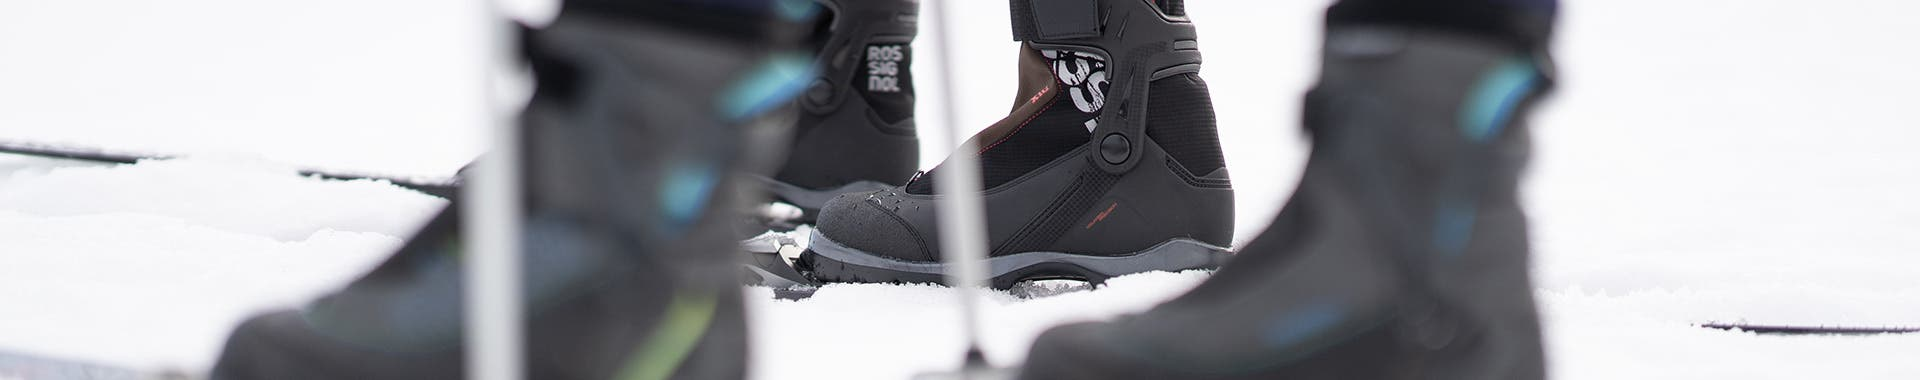 Chaussures ski de fond backcountry